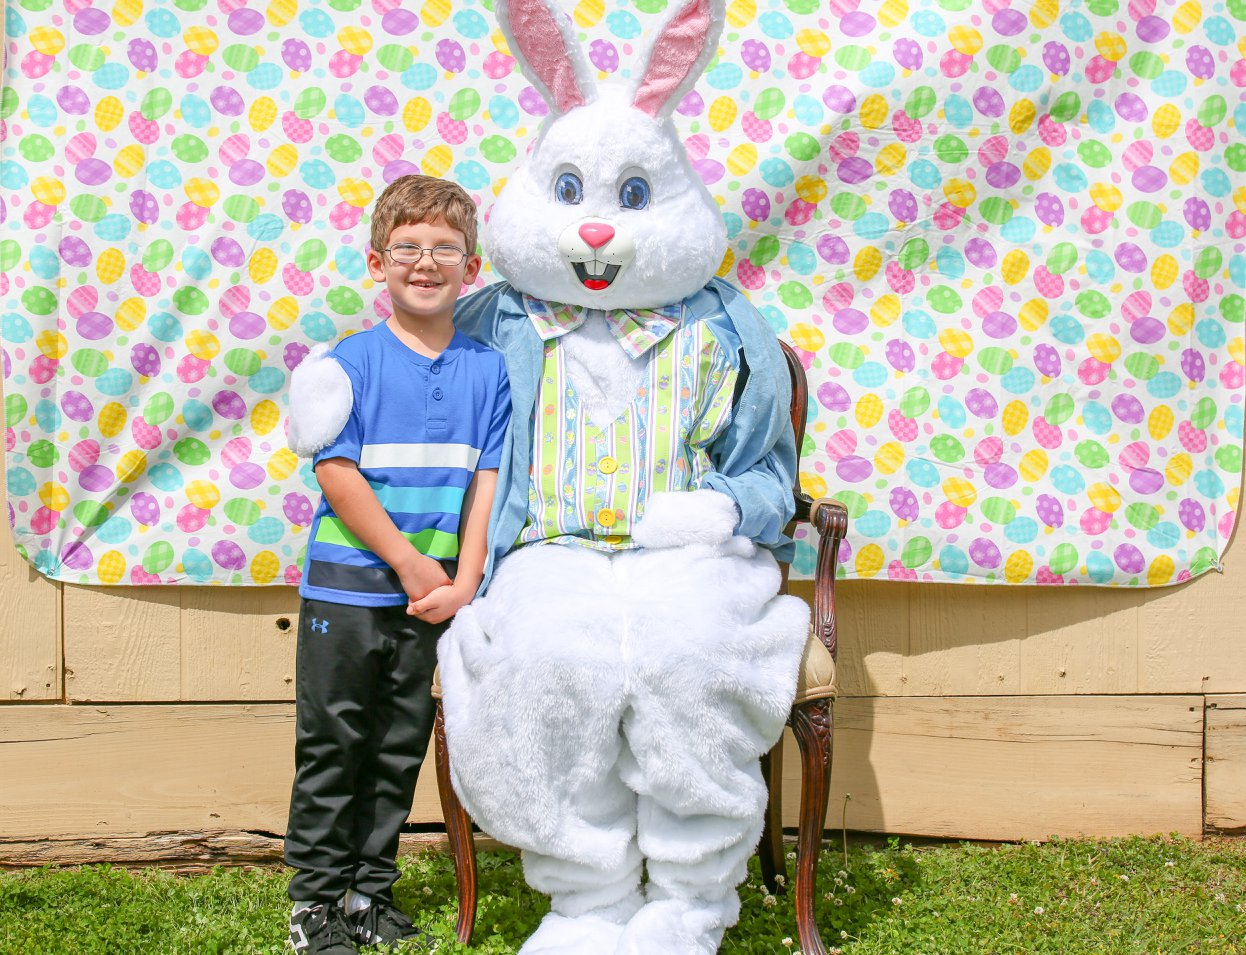 Easter Hoppening 2018 - March 24th, 2018